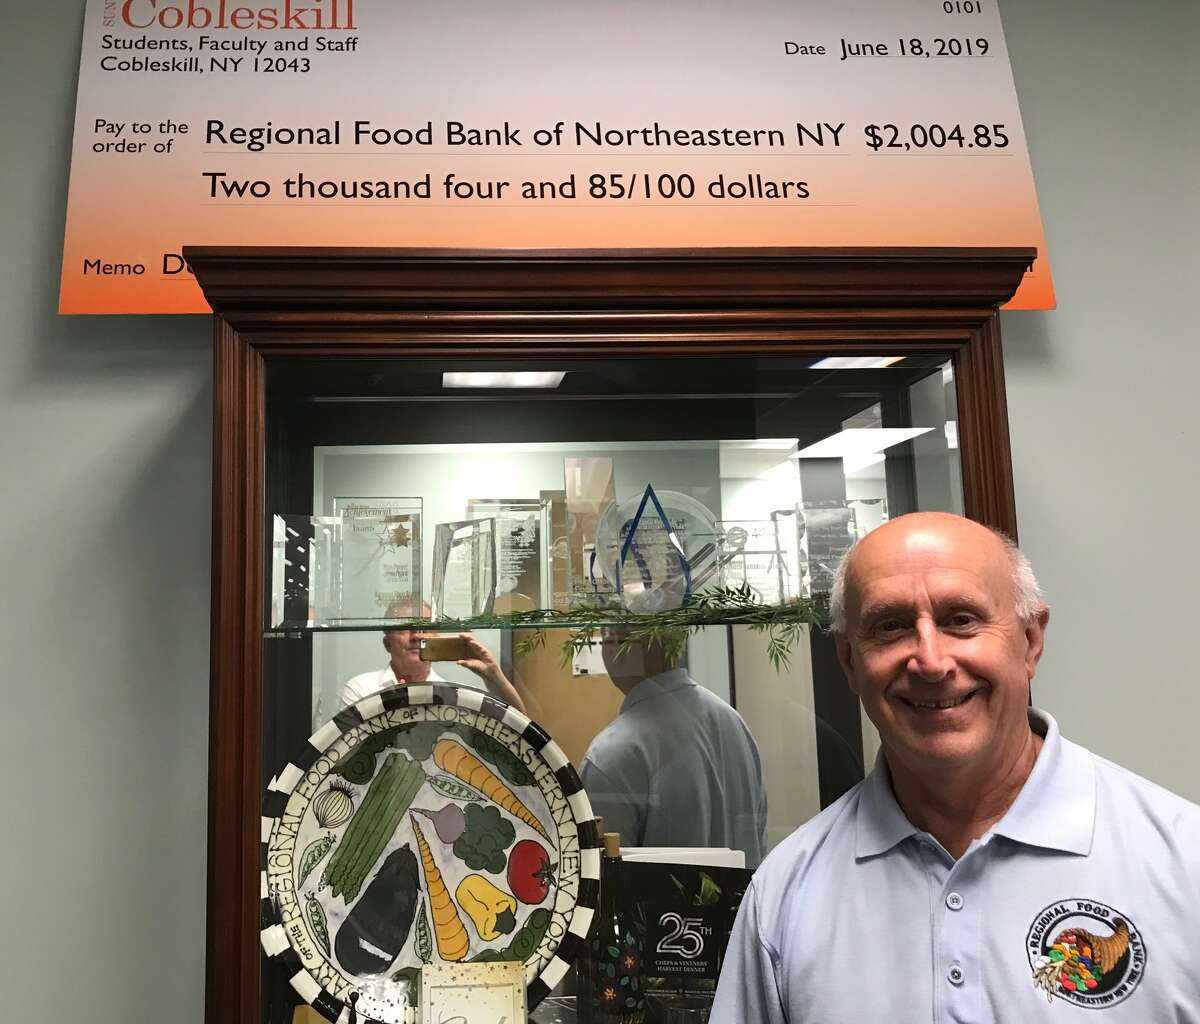 A display case at the Regional Food Bank of Northeastern New York contains numerous awards that Quandt and the organization have received since he began running it in 1983, the year after it was established.